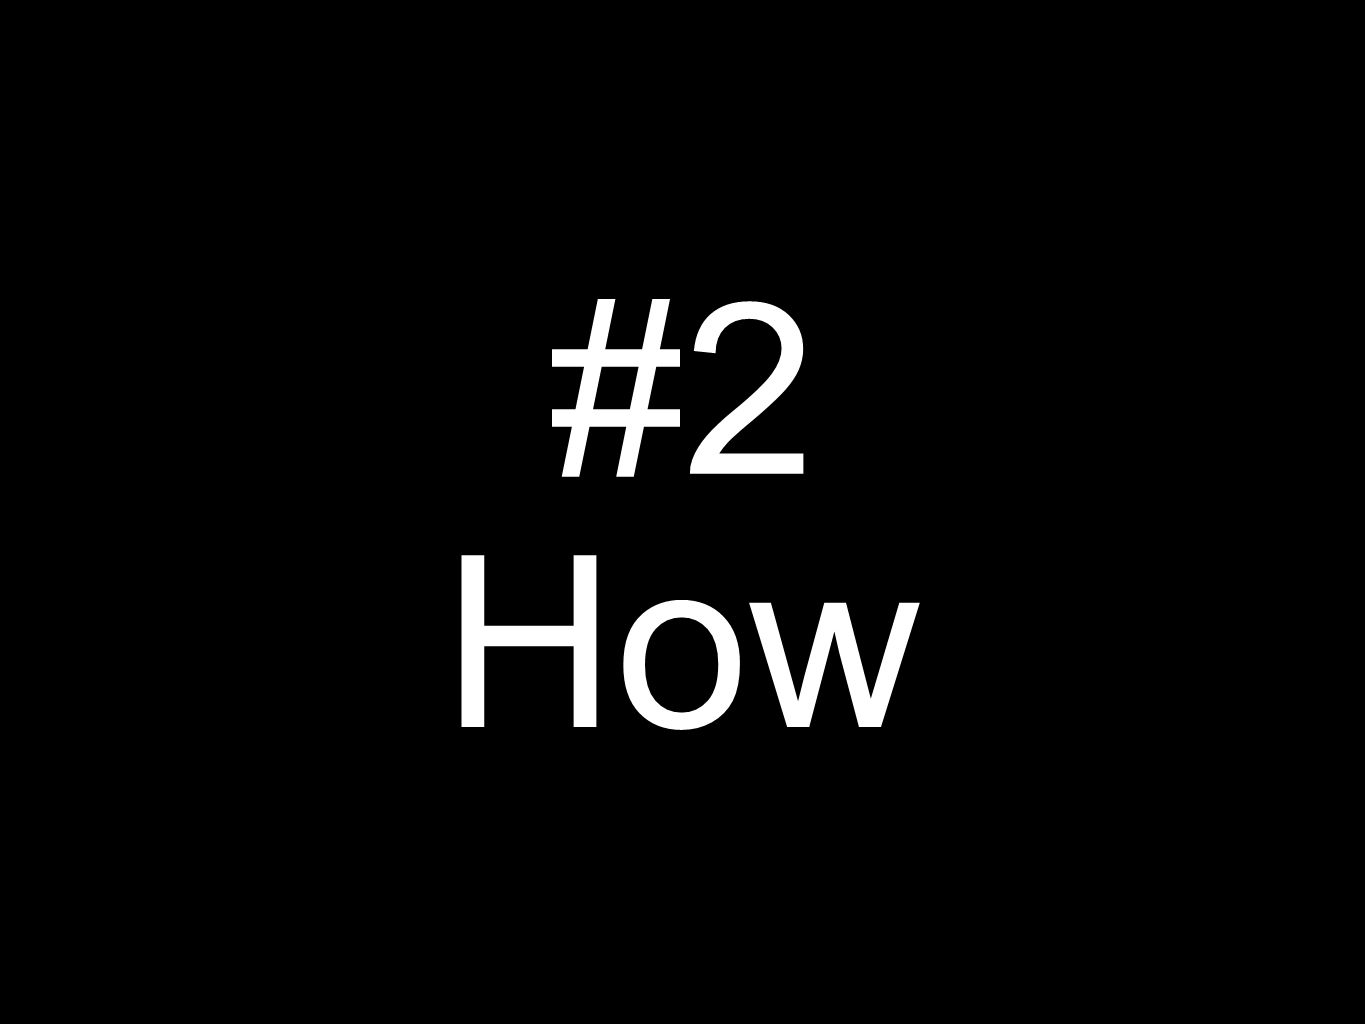 #2 How